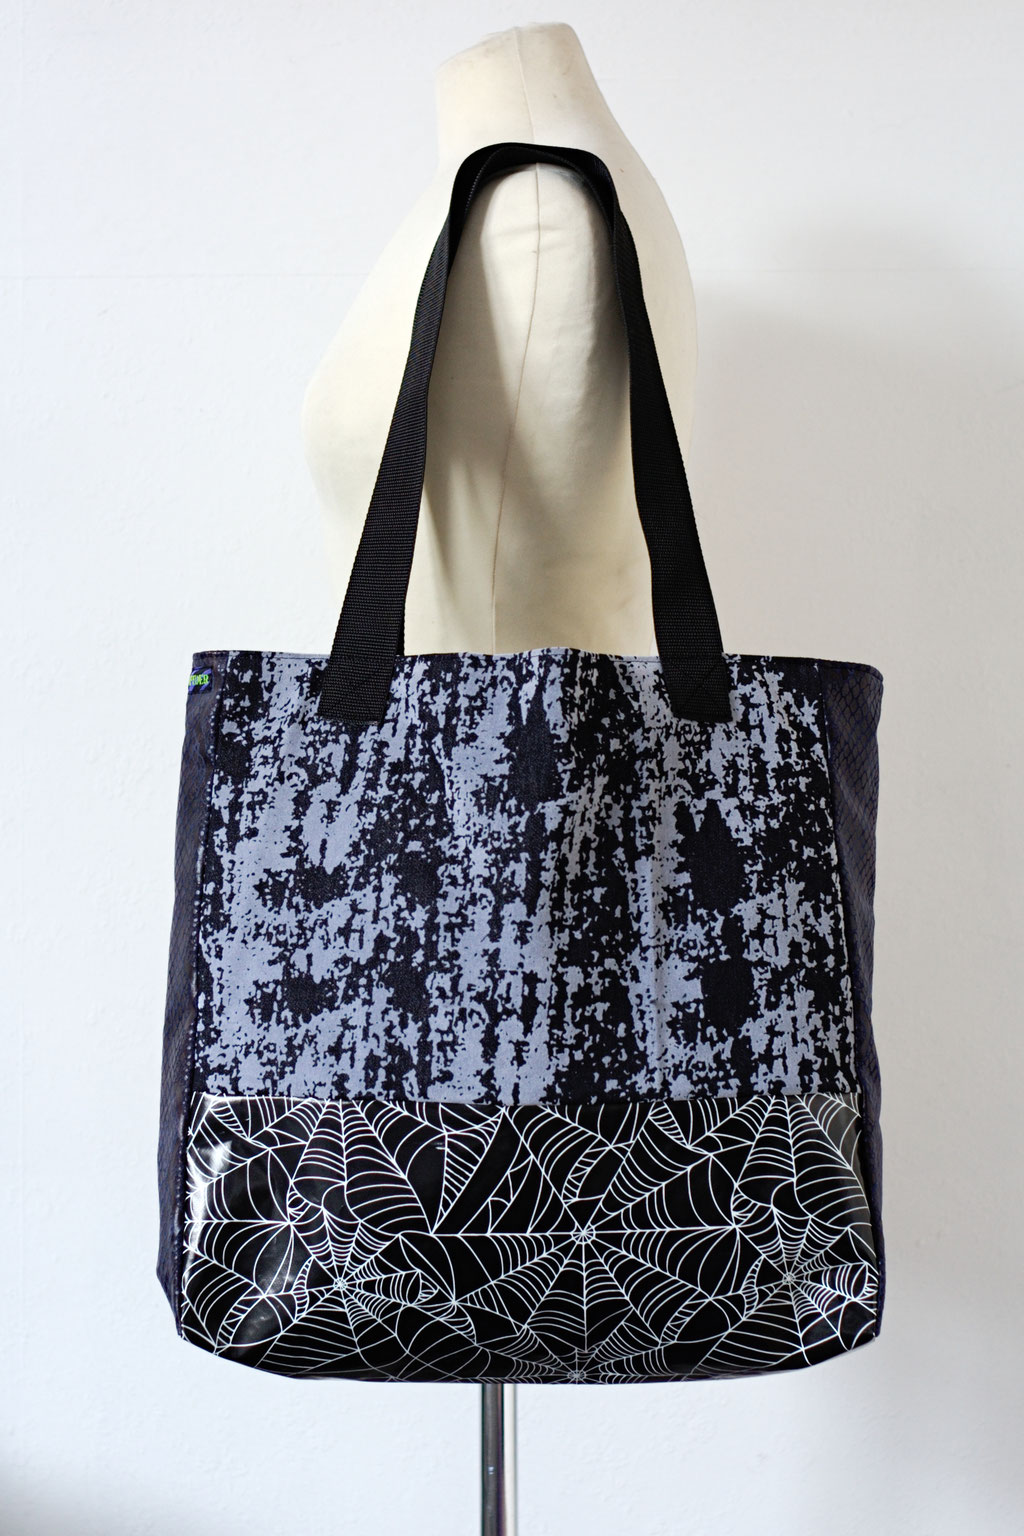 2021 belt bags and new shoulder bags out now! - Tote Bag Decay & Spiderwebs snap hook - Zebraspider Eco Anti-Fashion